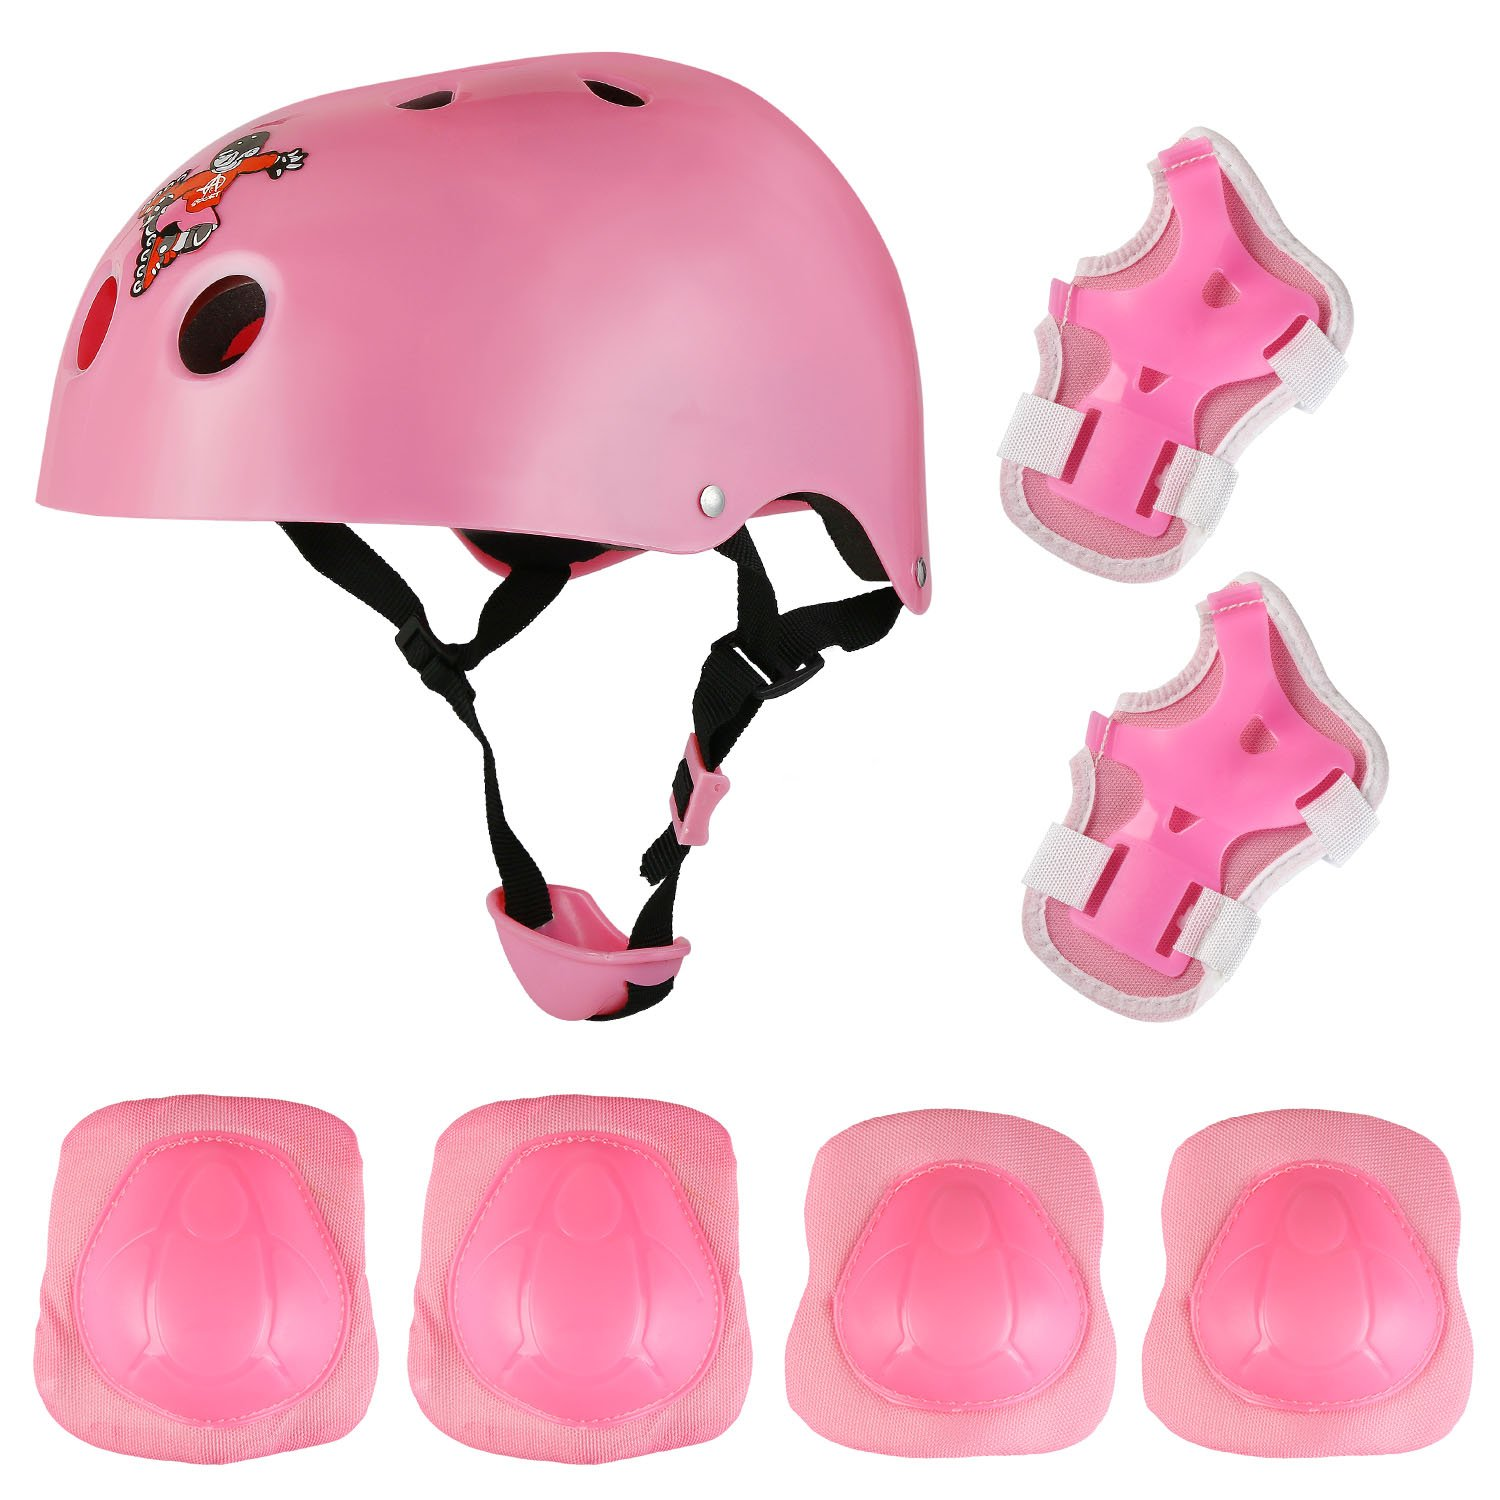 AODI Child's Protective Pads Sports Support Safety Set Equipment with Knee Elbow Pads Wrist Guards and Helmet for Scooter and Rollerblading - Multiple Colors